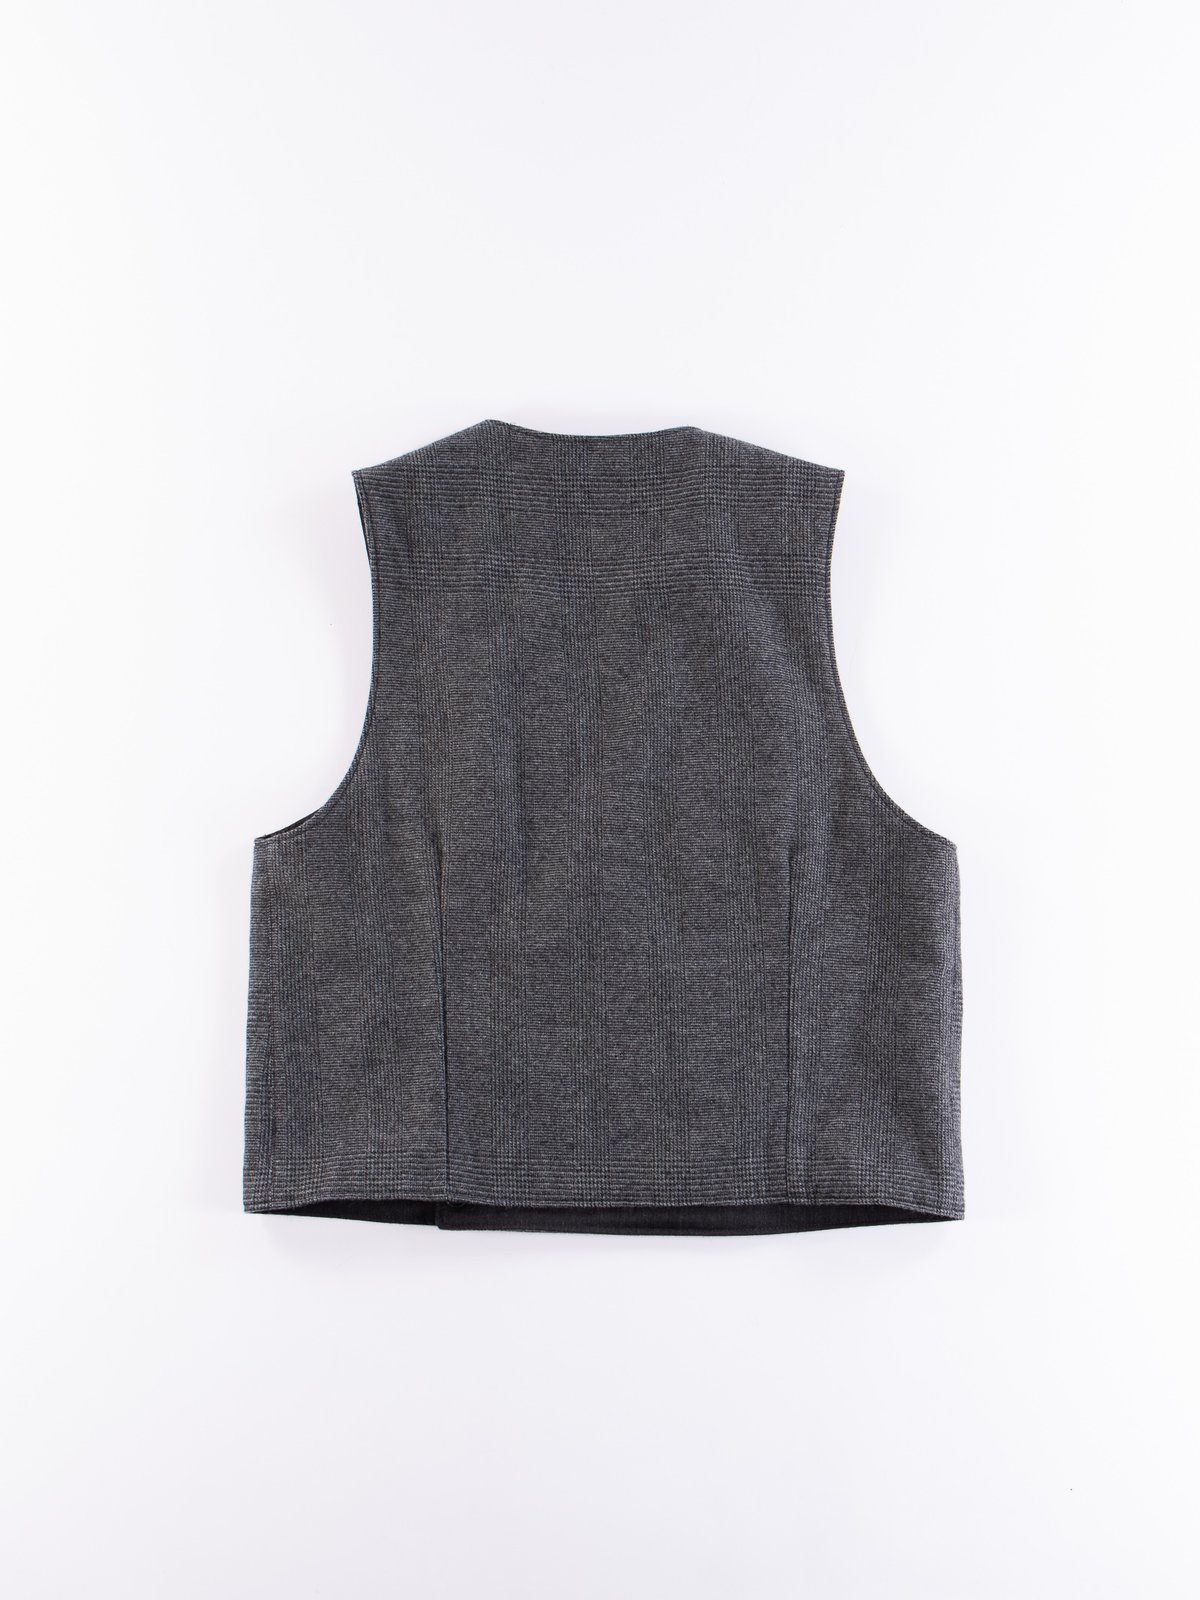 Charcoal Worsted Wool Gabardine Reversible Vest - Image 7